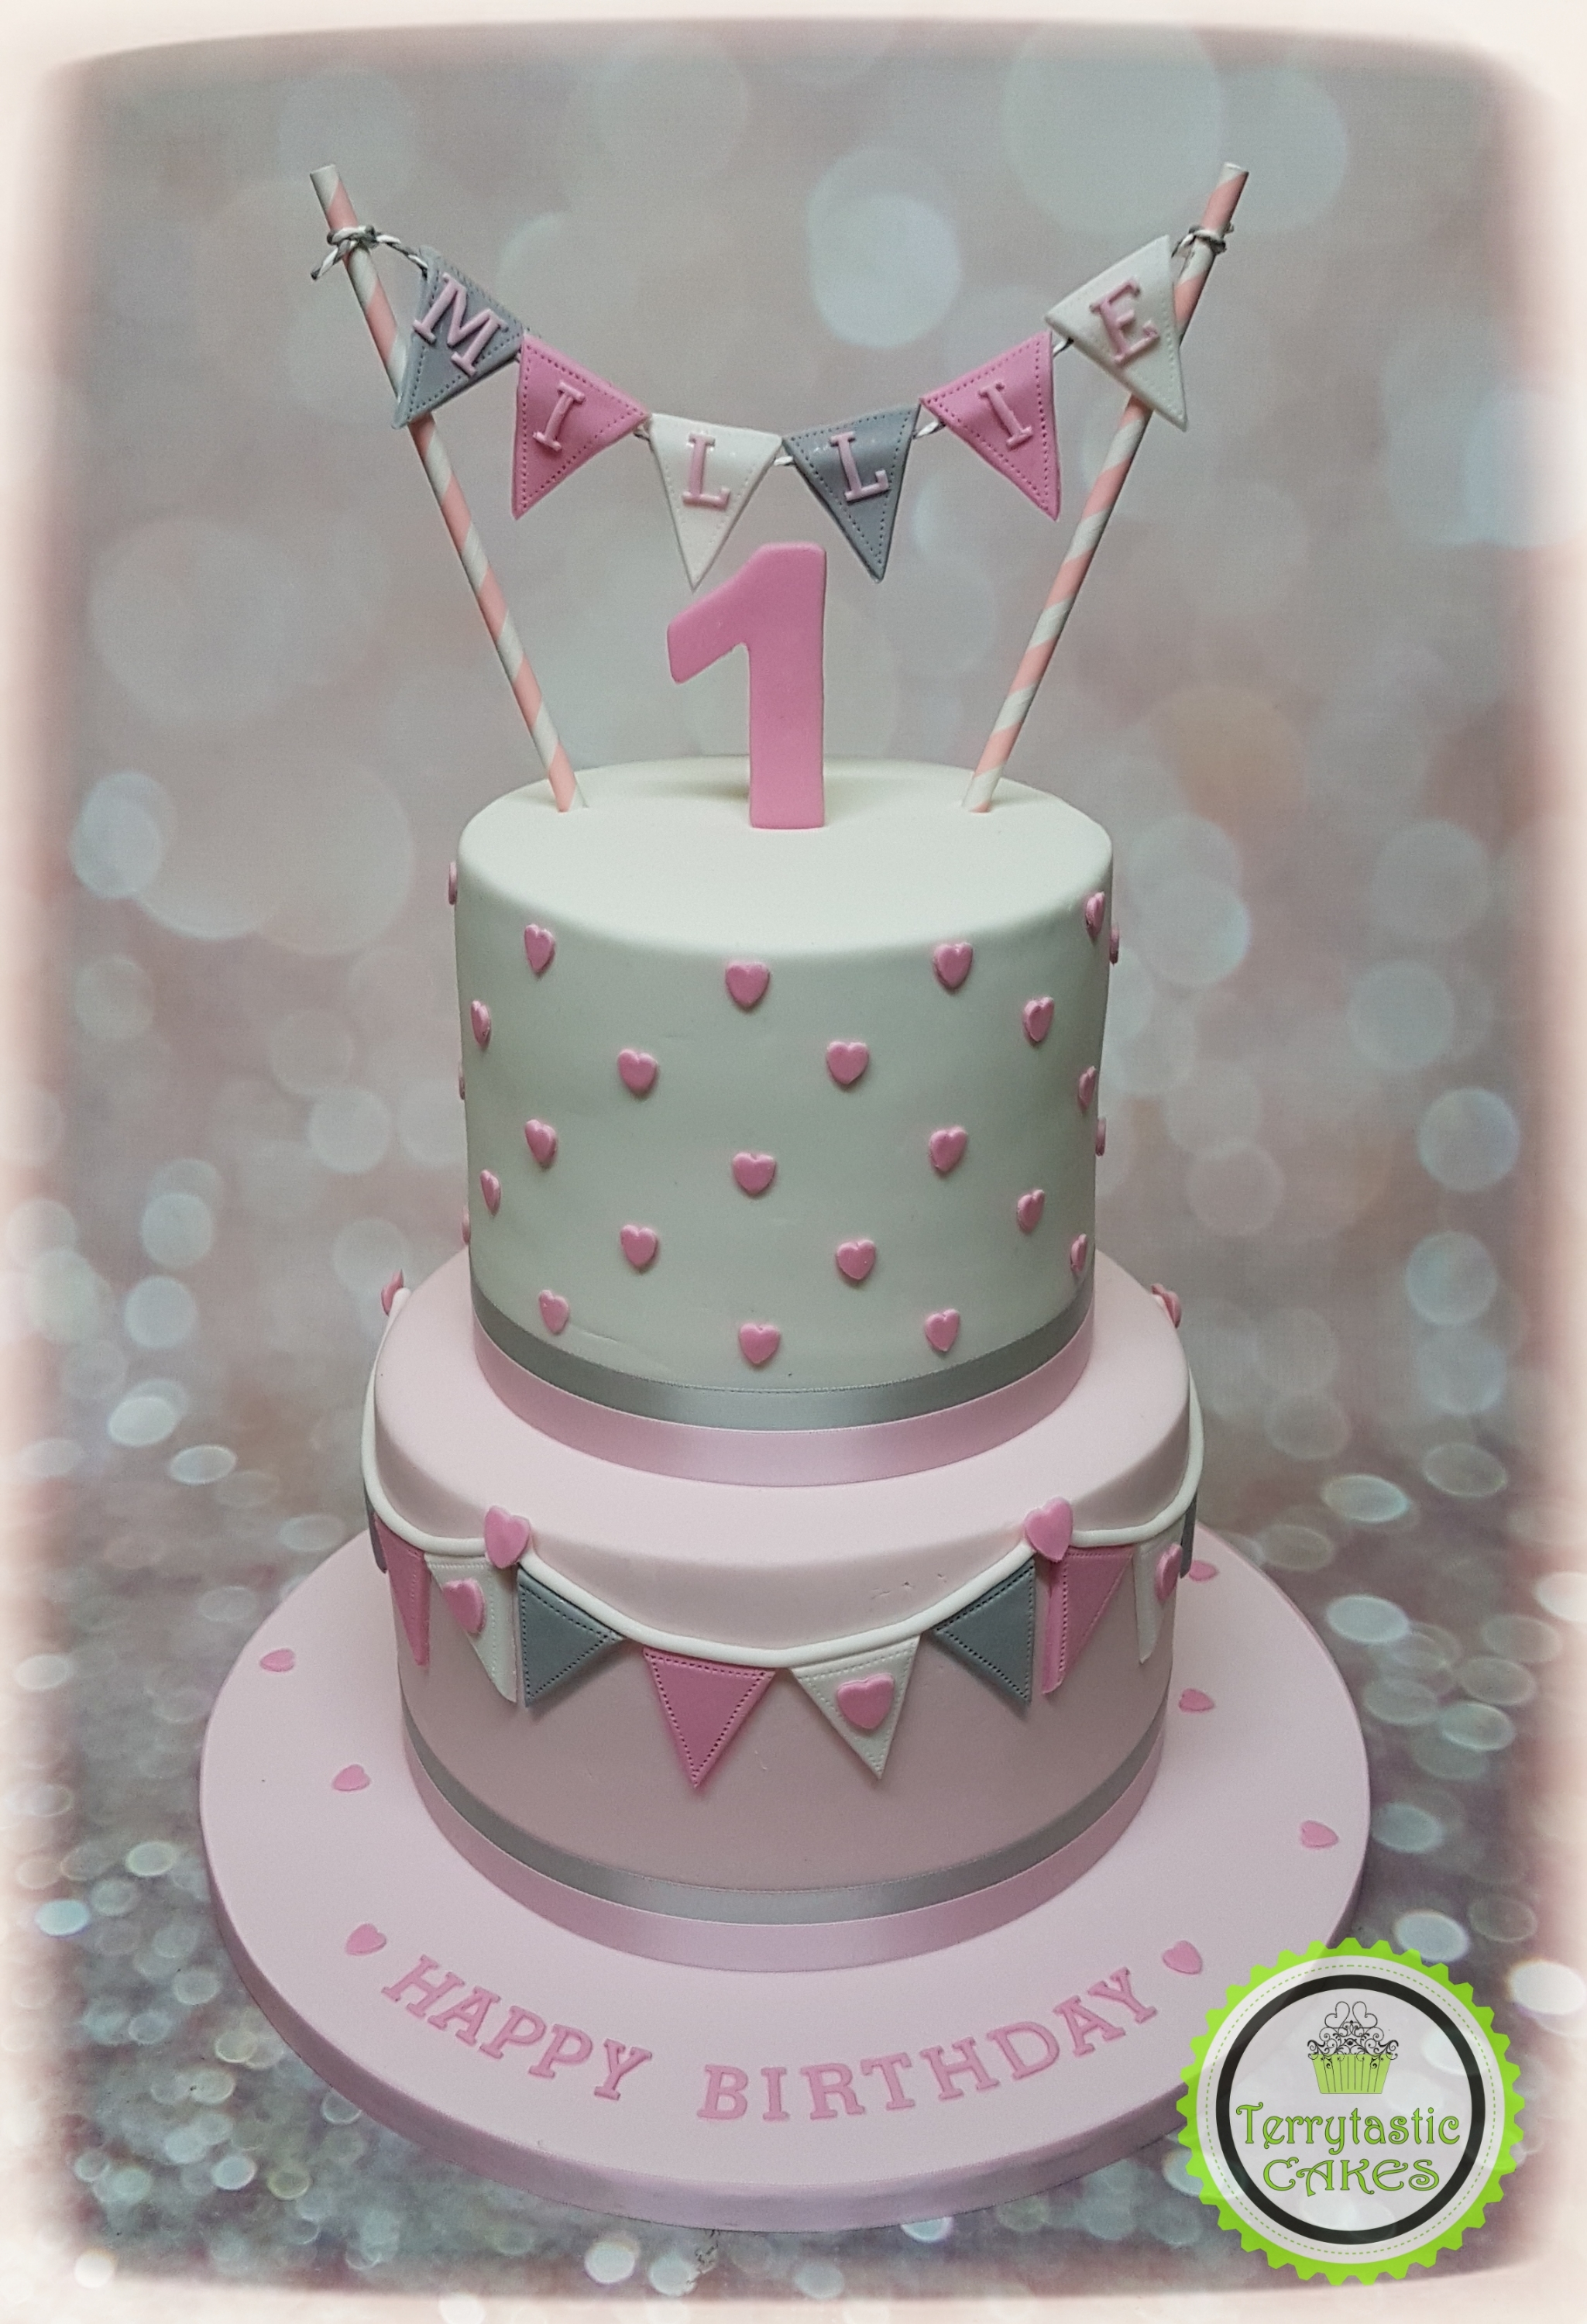 1st Birthday Cake With Bunting Girl